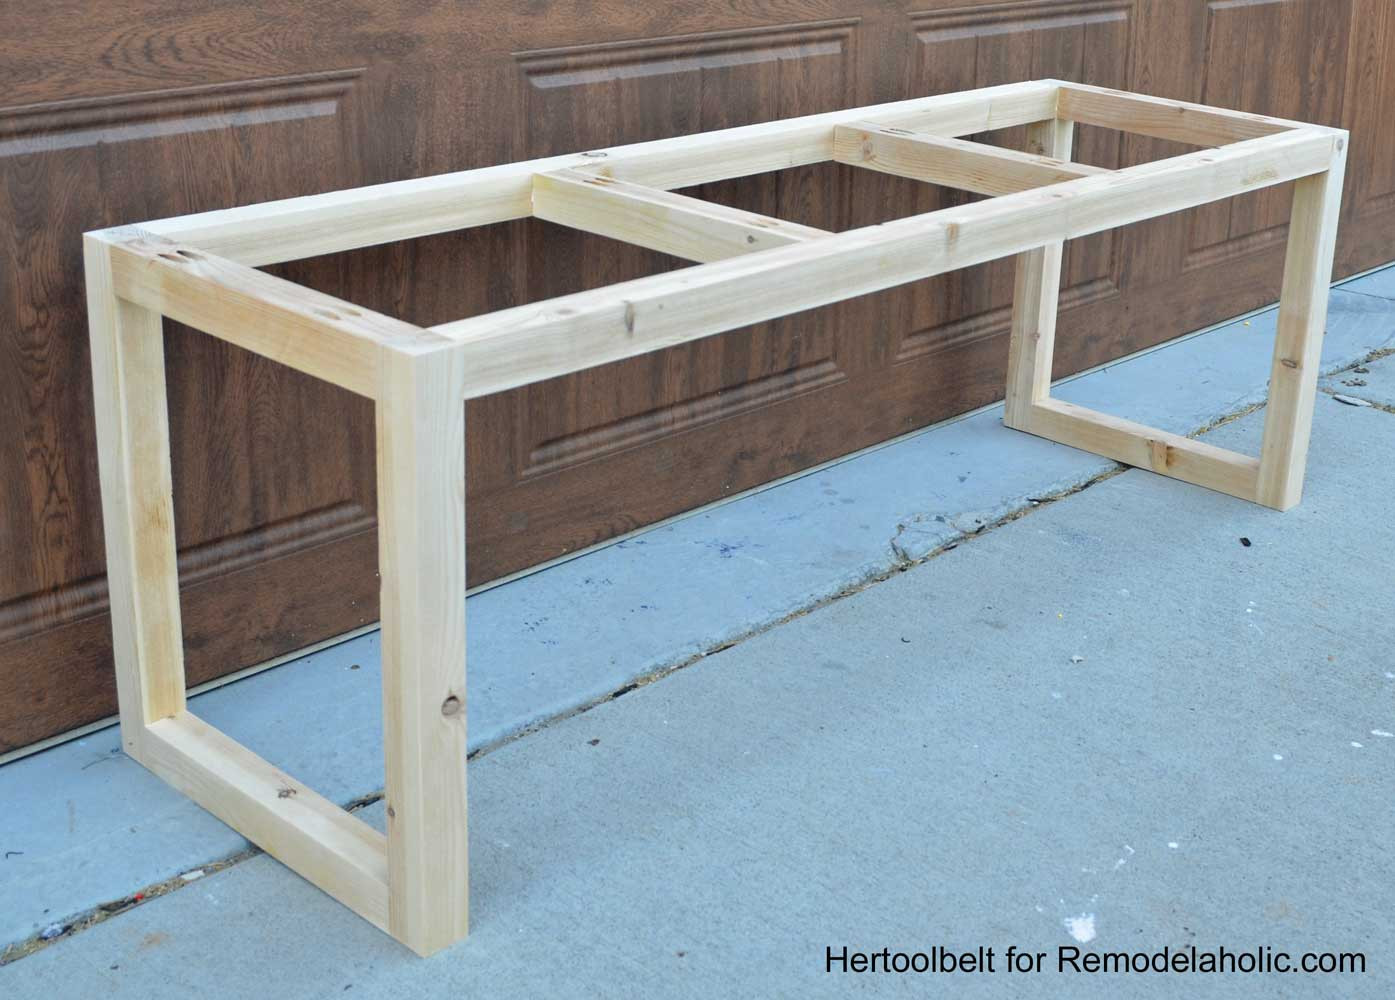 Best ideas about DIY Wood Bench . Save or Pin Remodelaholic Now.